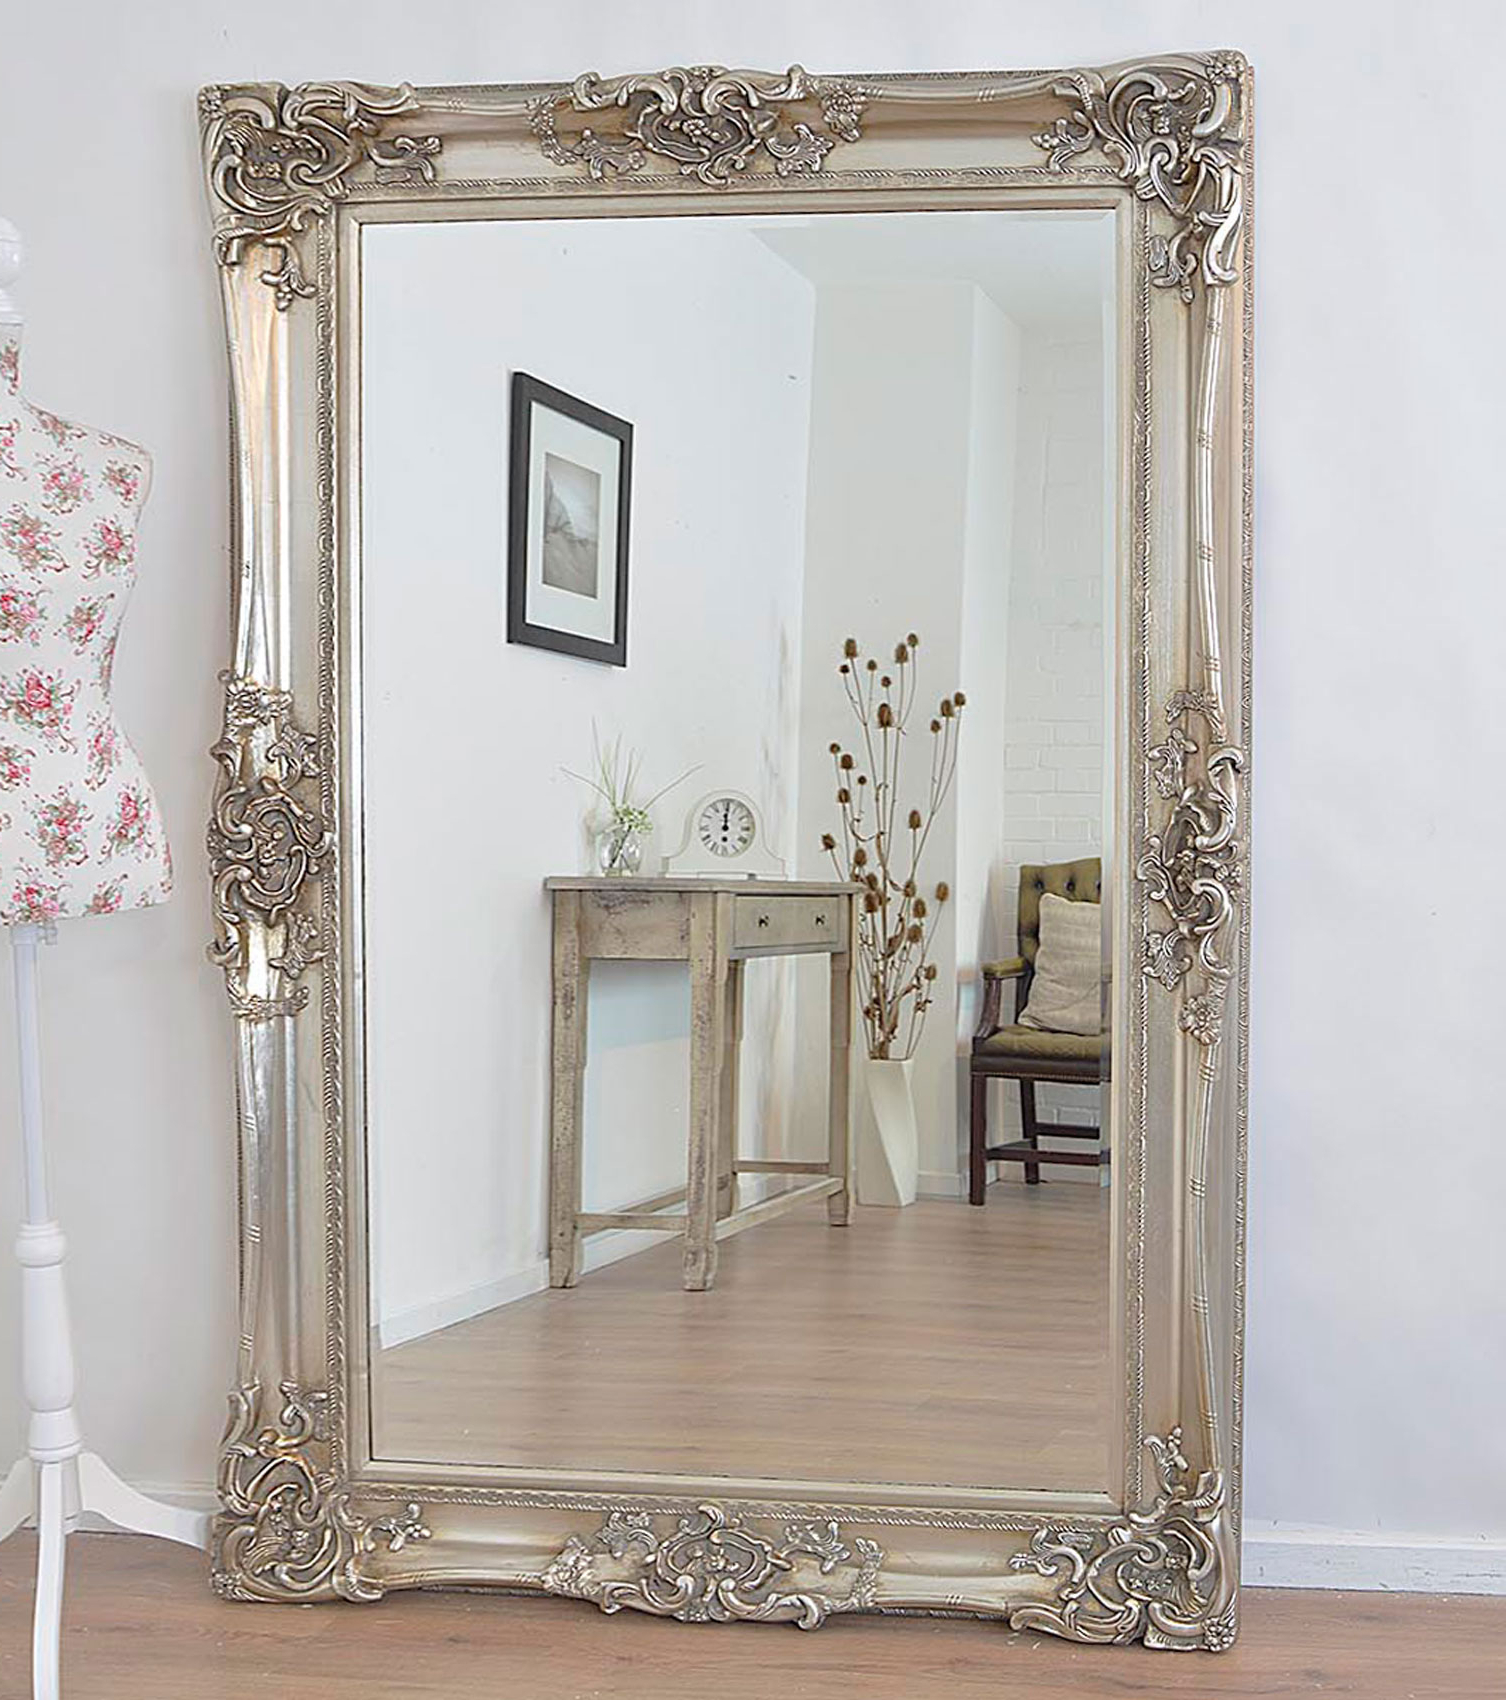 Antique Design Ornate Wall Mirror Will Make A Beautiful In Most Popular Ornate Wall Mirrors (View 9 of 20)